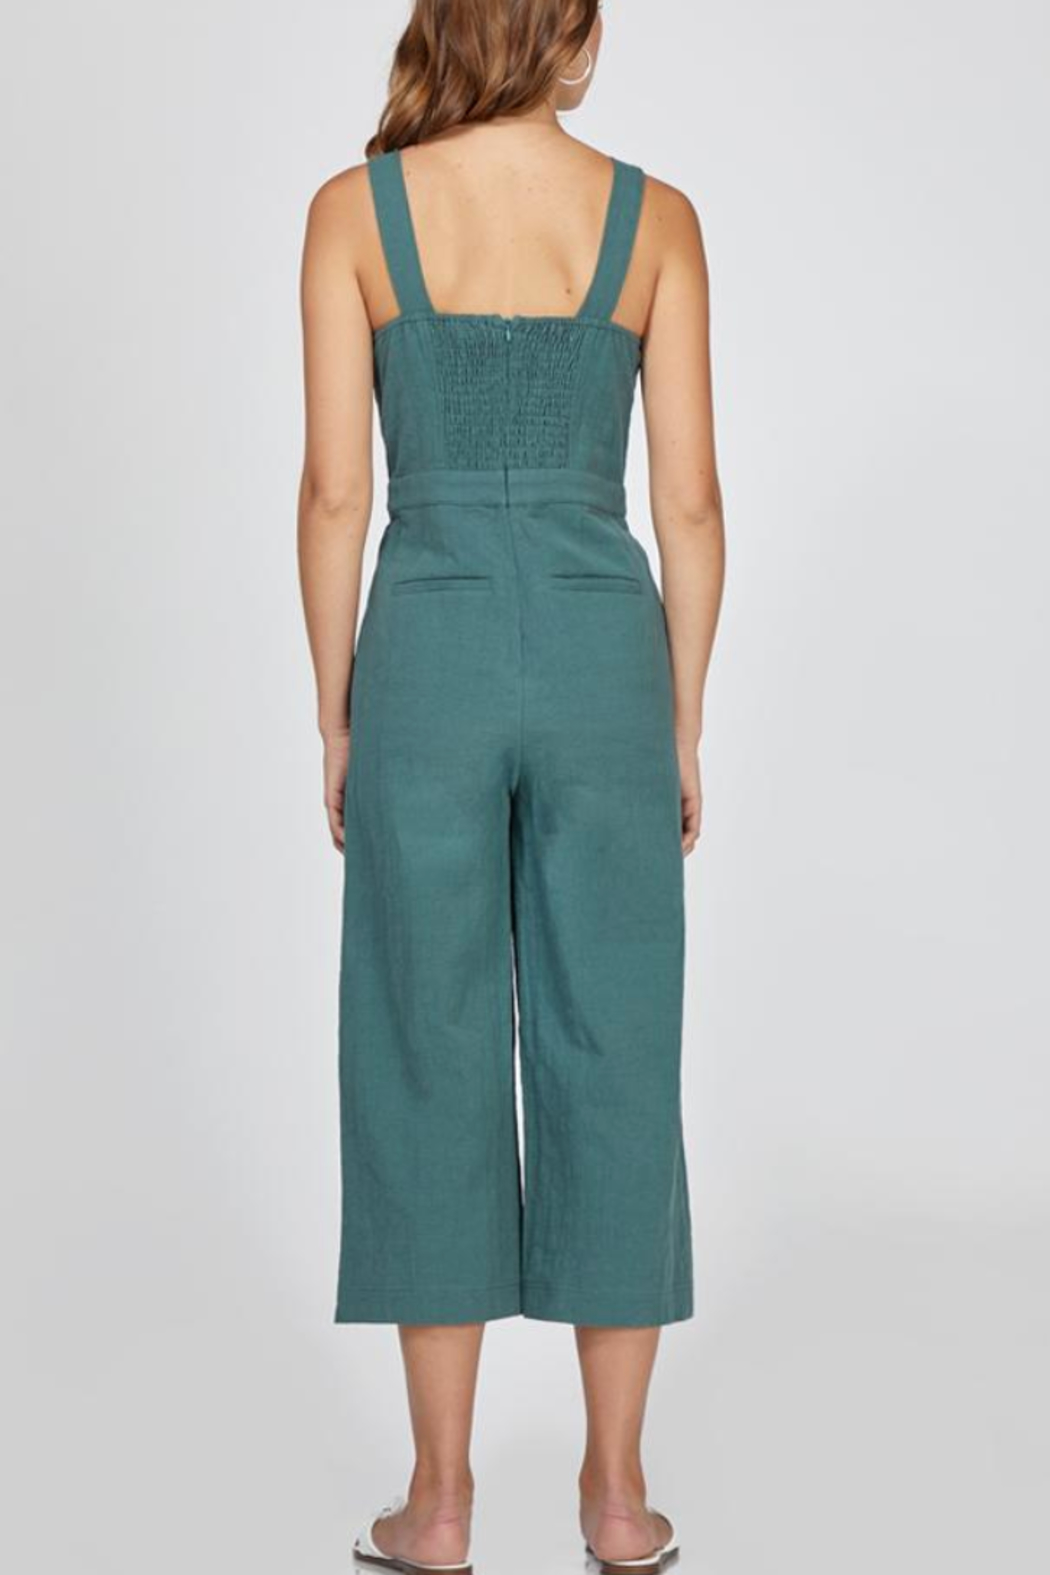 Greylin Lenox Button-Up Culotte Jumpsuit - Front Full Image